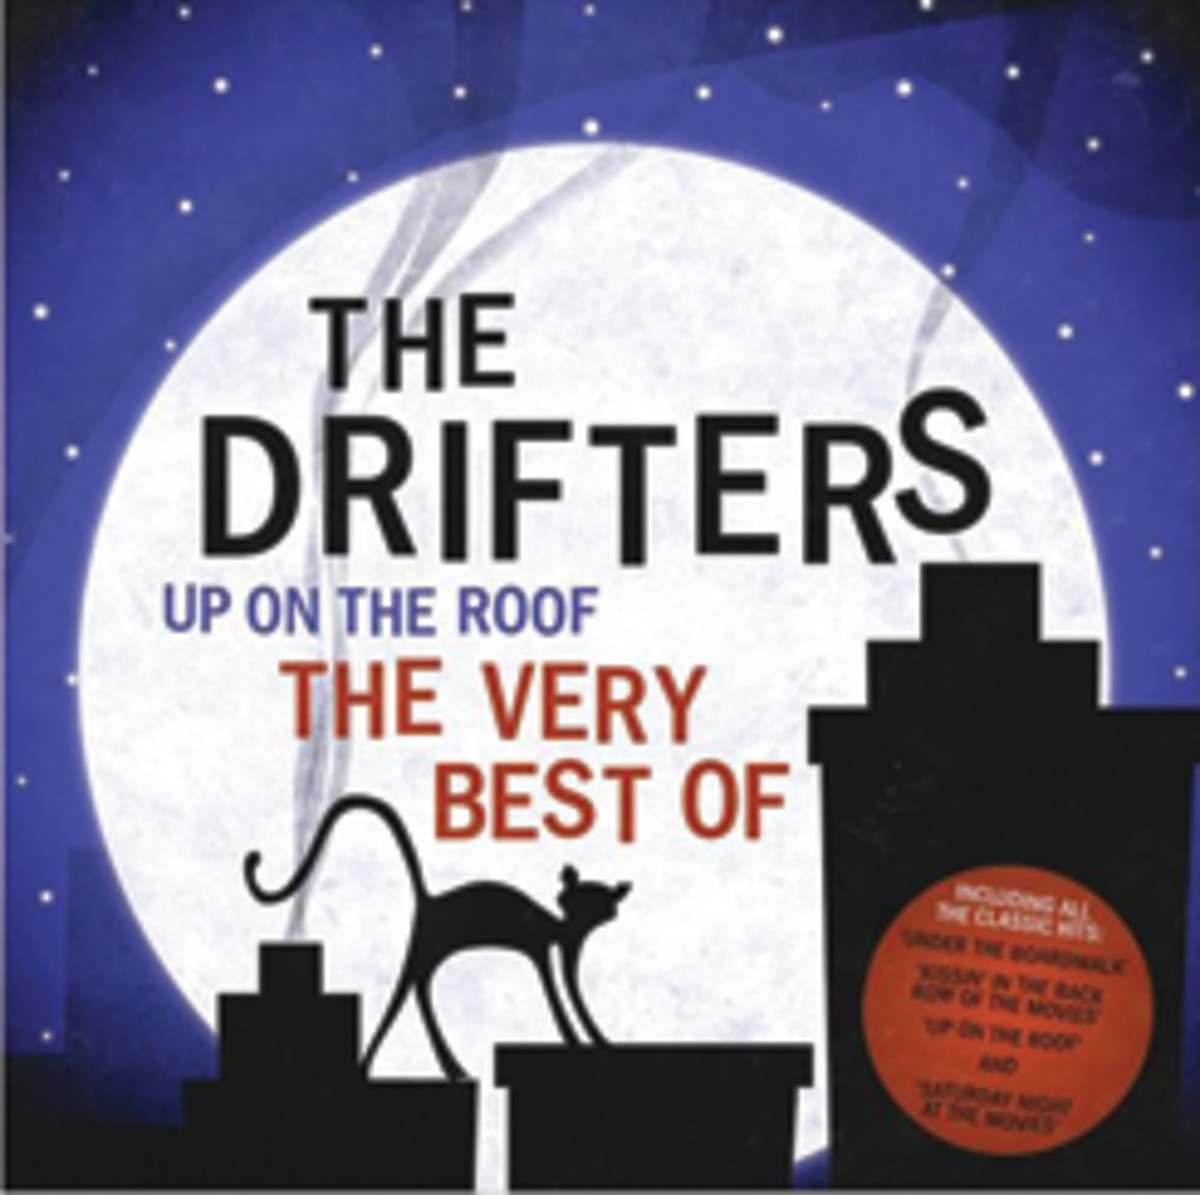 The Drifters Up on The Roof The Very Best of The Drifters